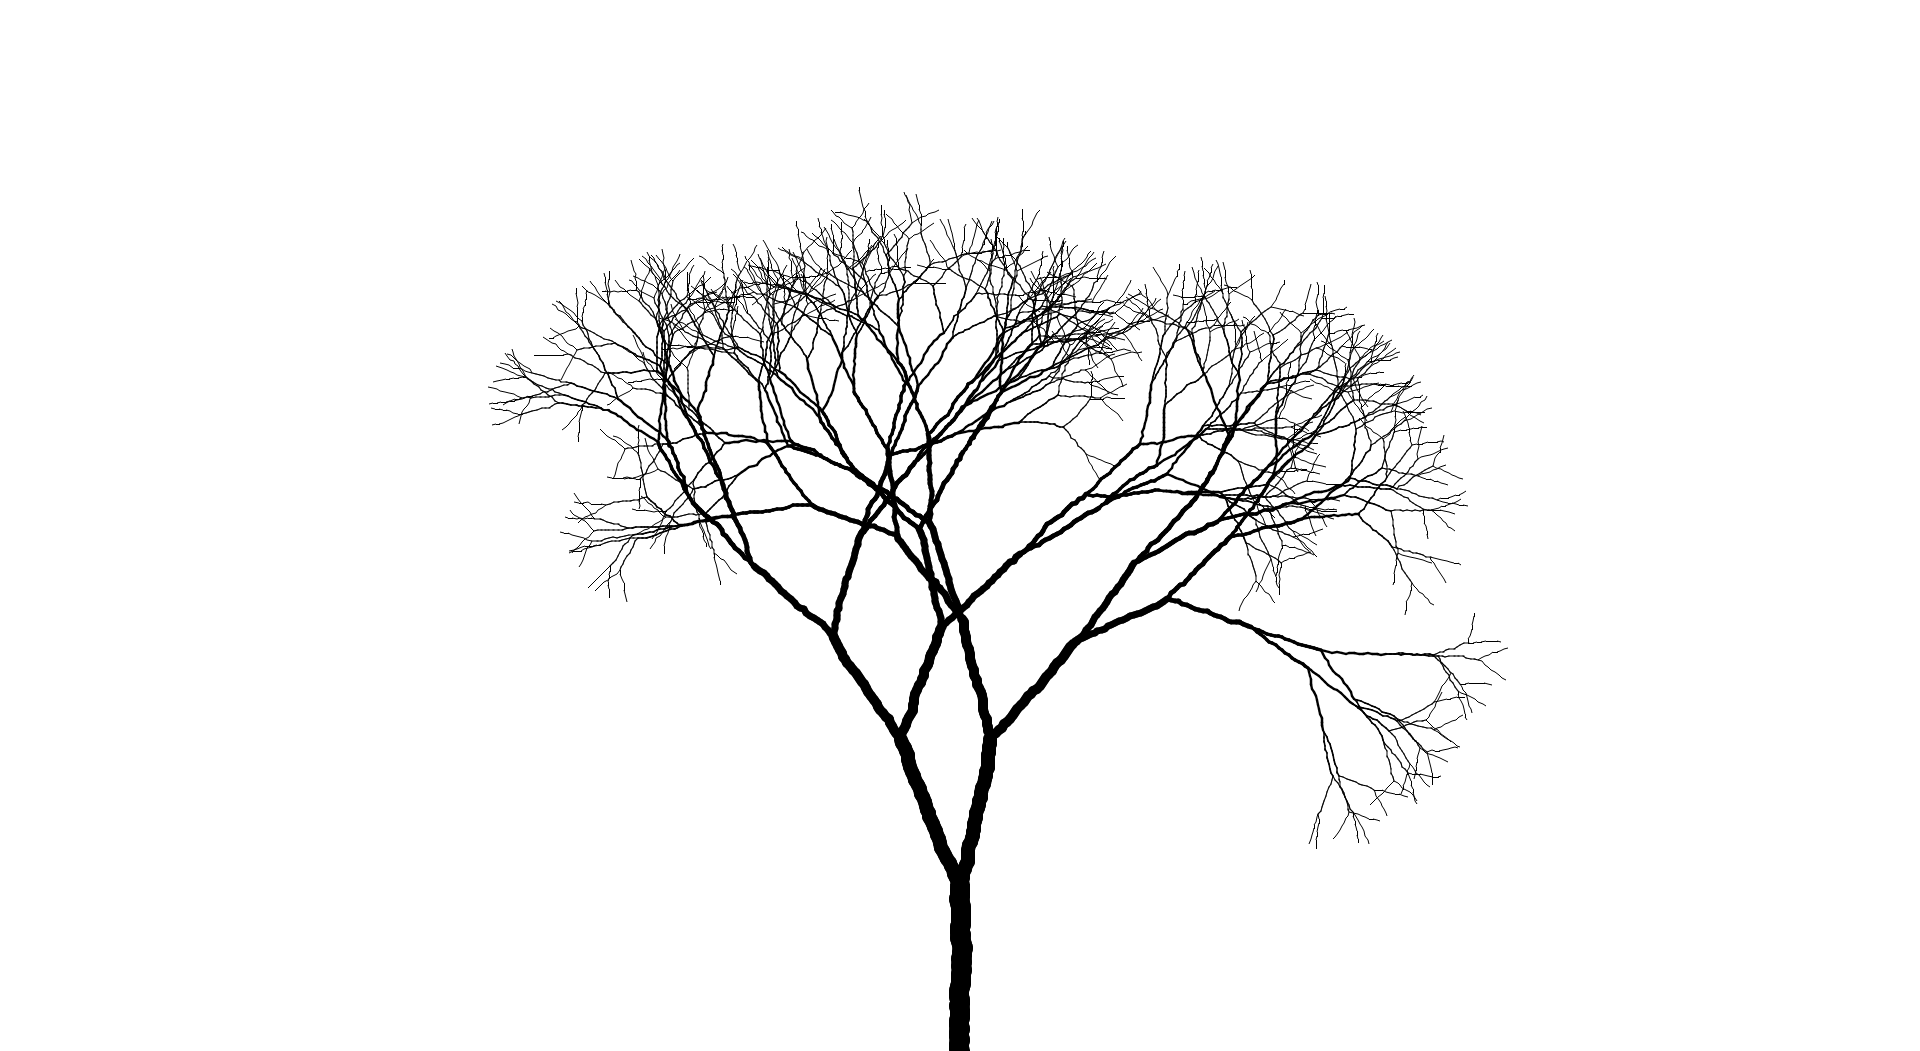 Tree Sketch Png, png collections at sccpre.cat.